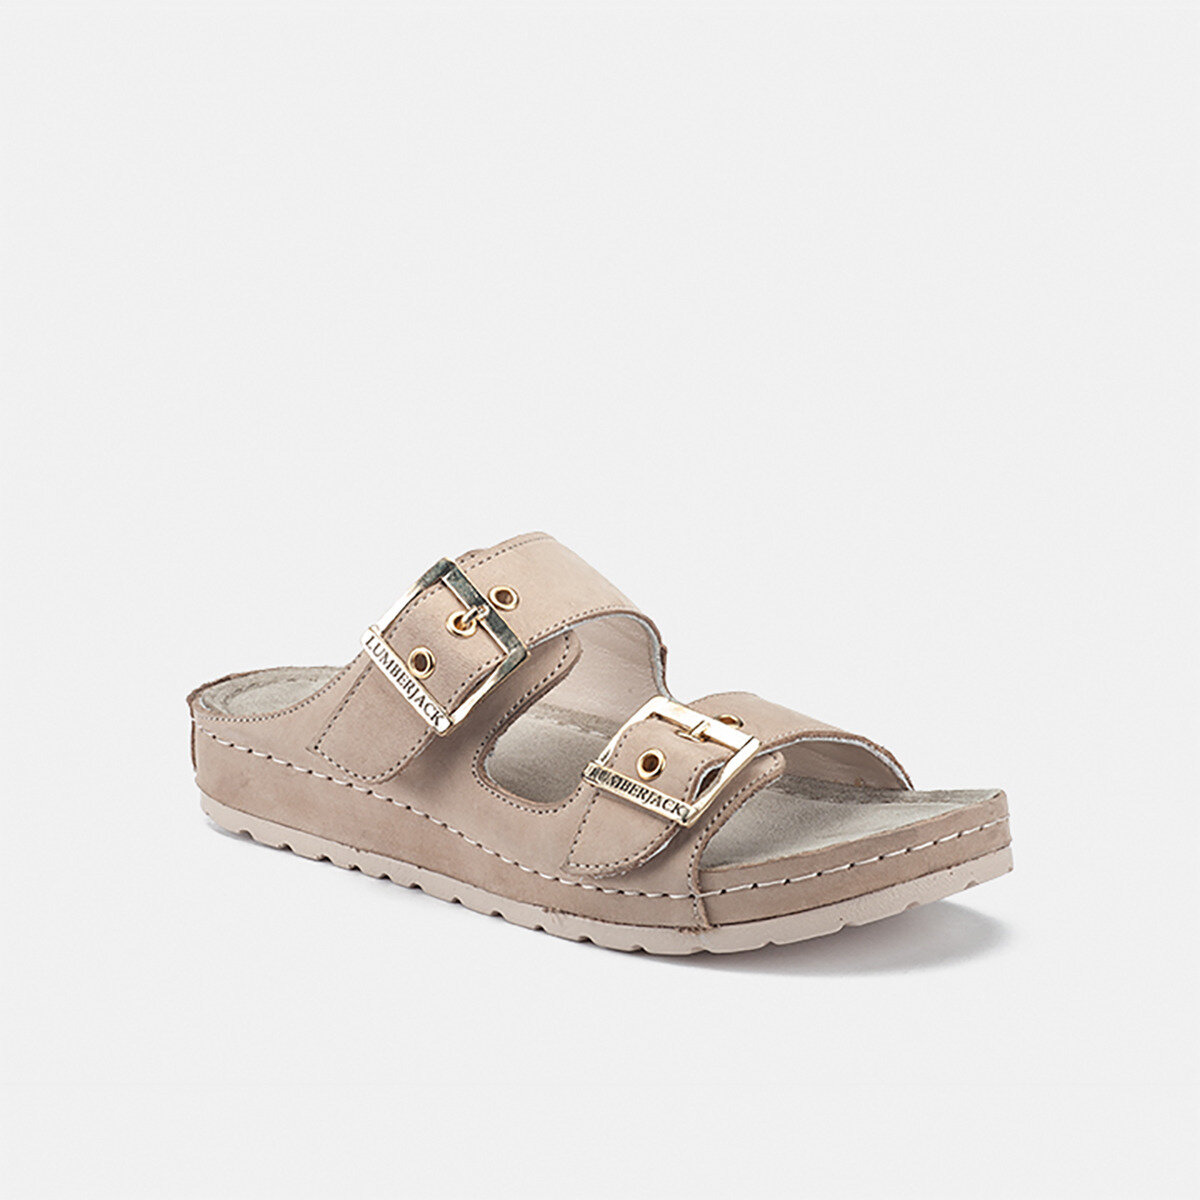 EZA CREAM Woman Sandals